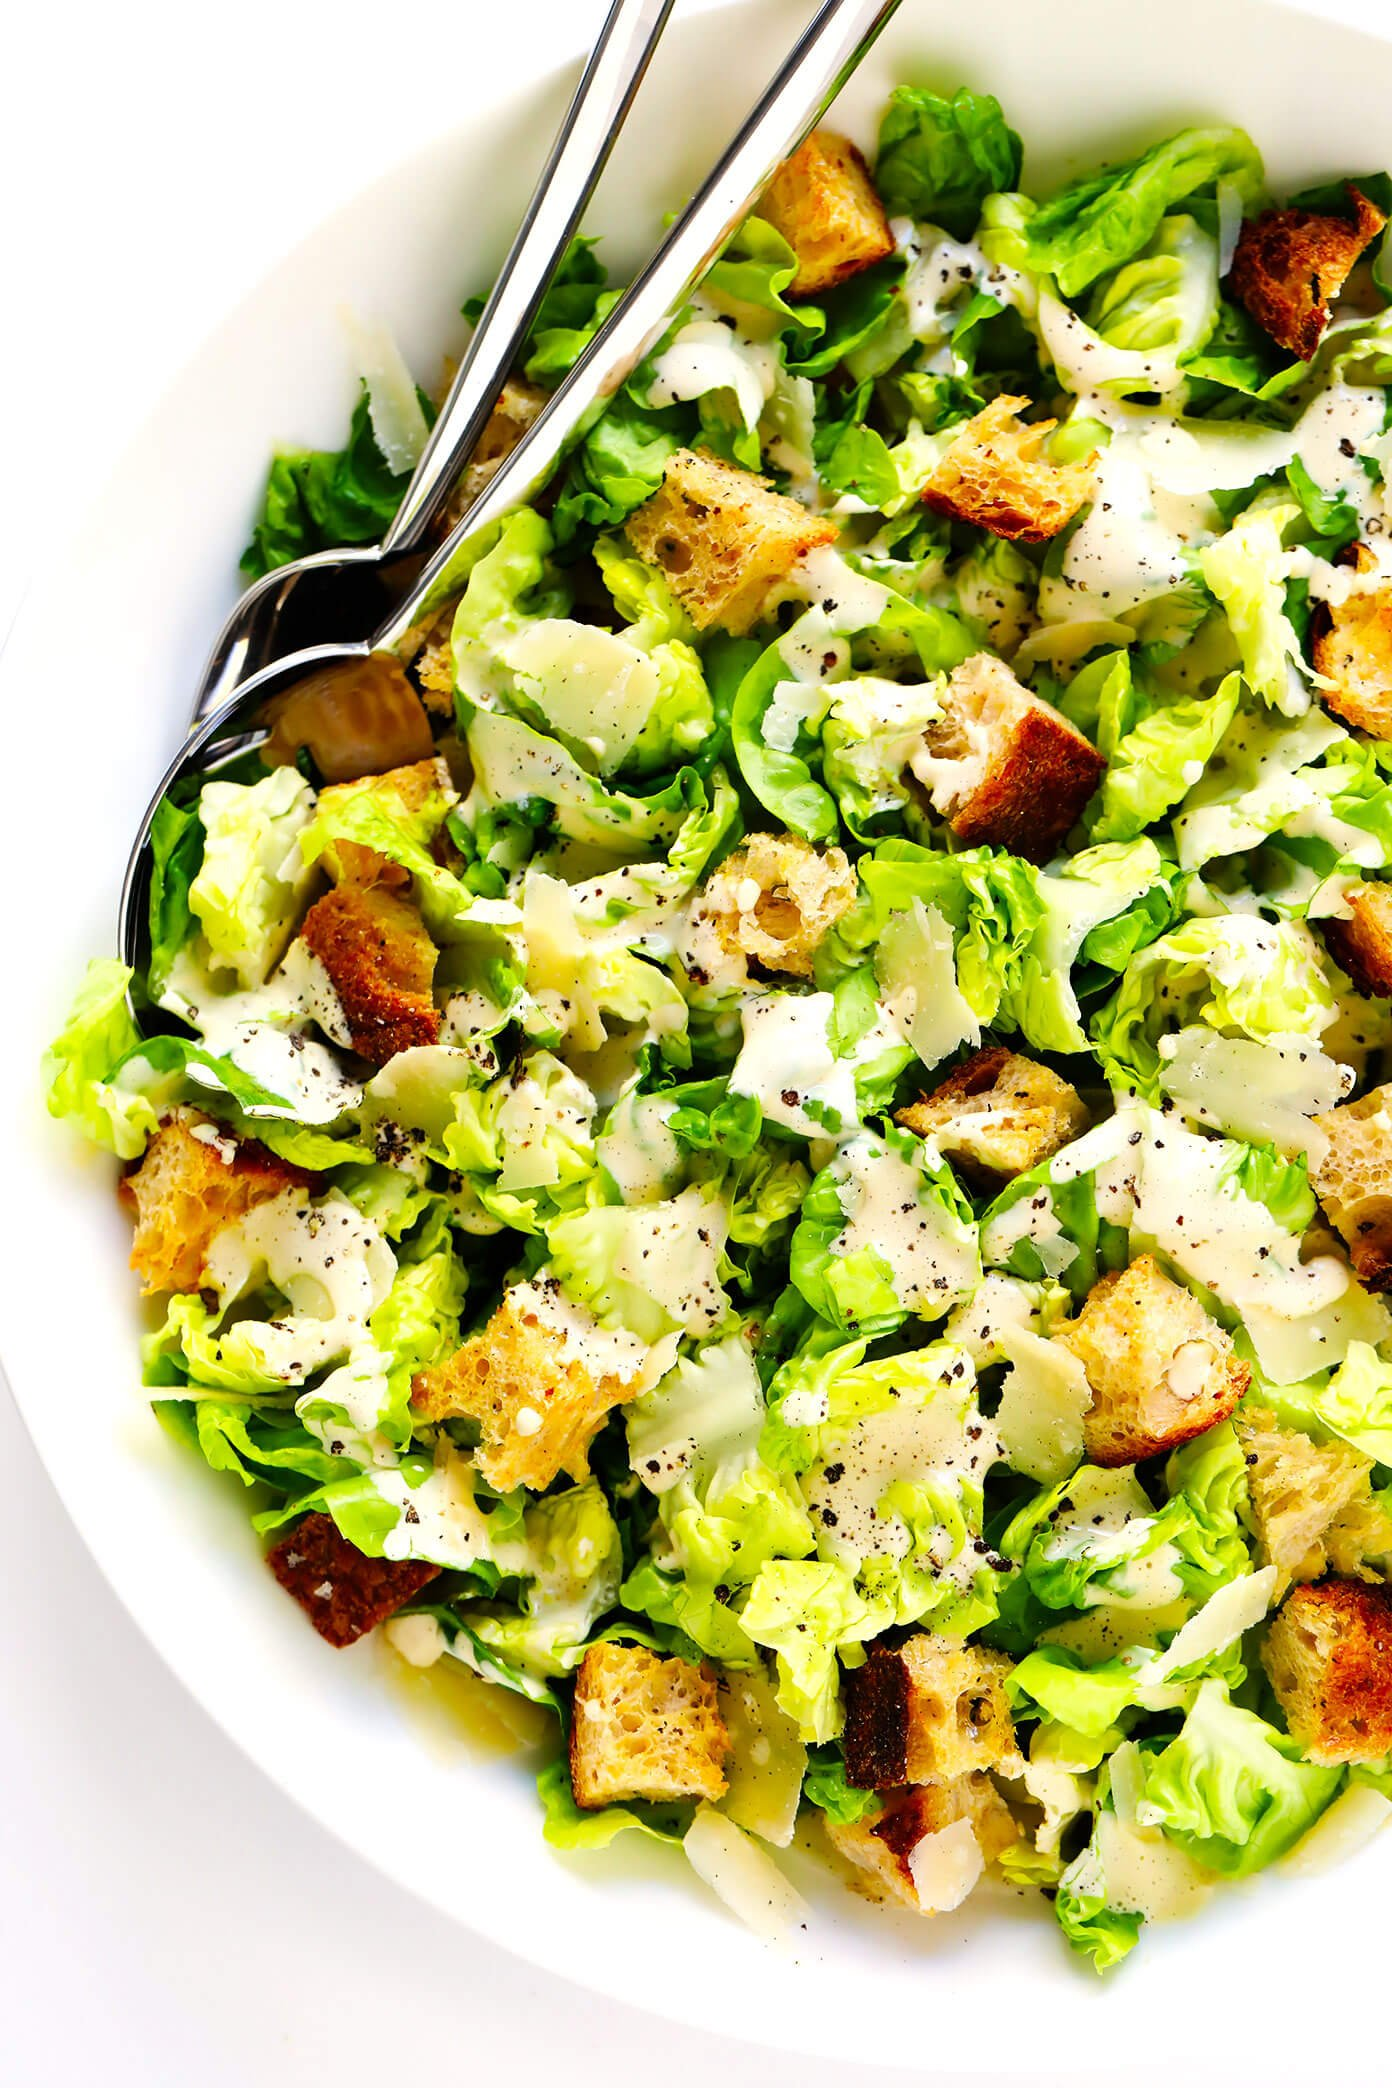 Homemade Caesar Salad with Caesar Dressing Drizzled on Top